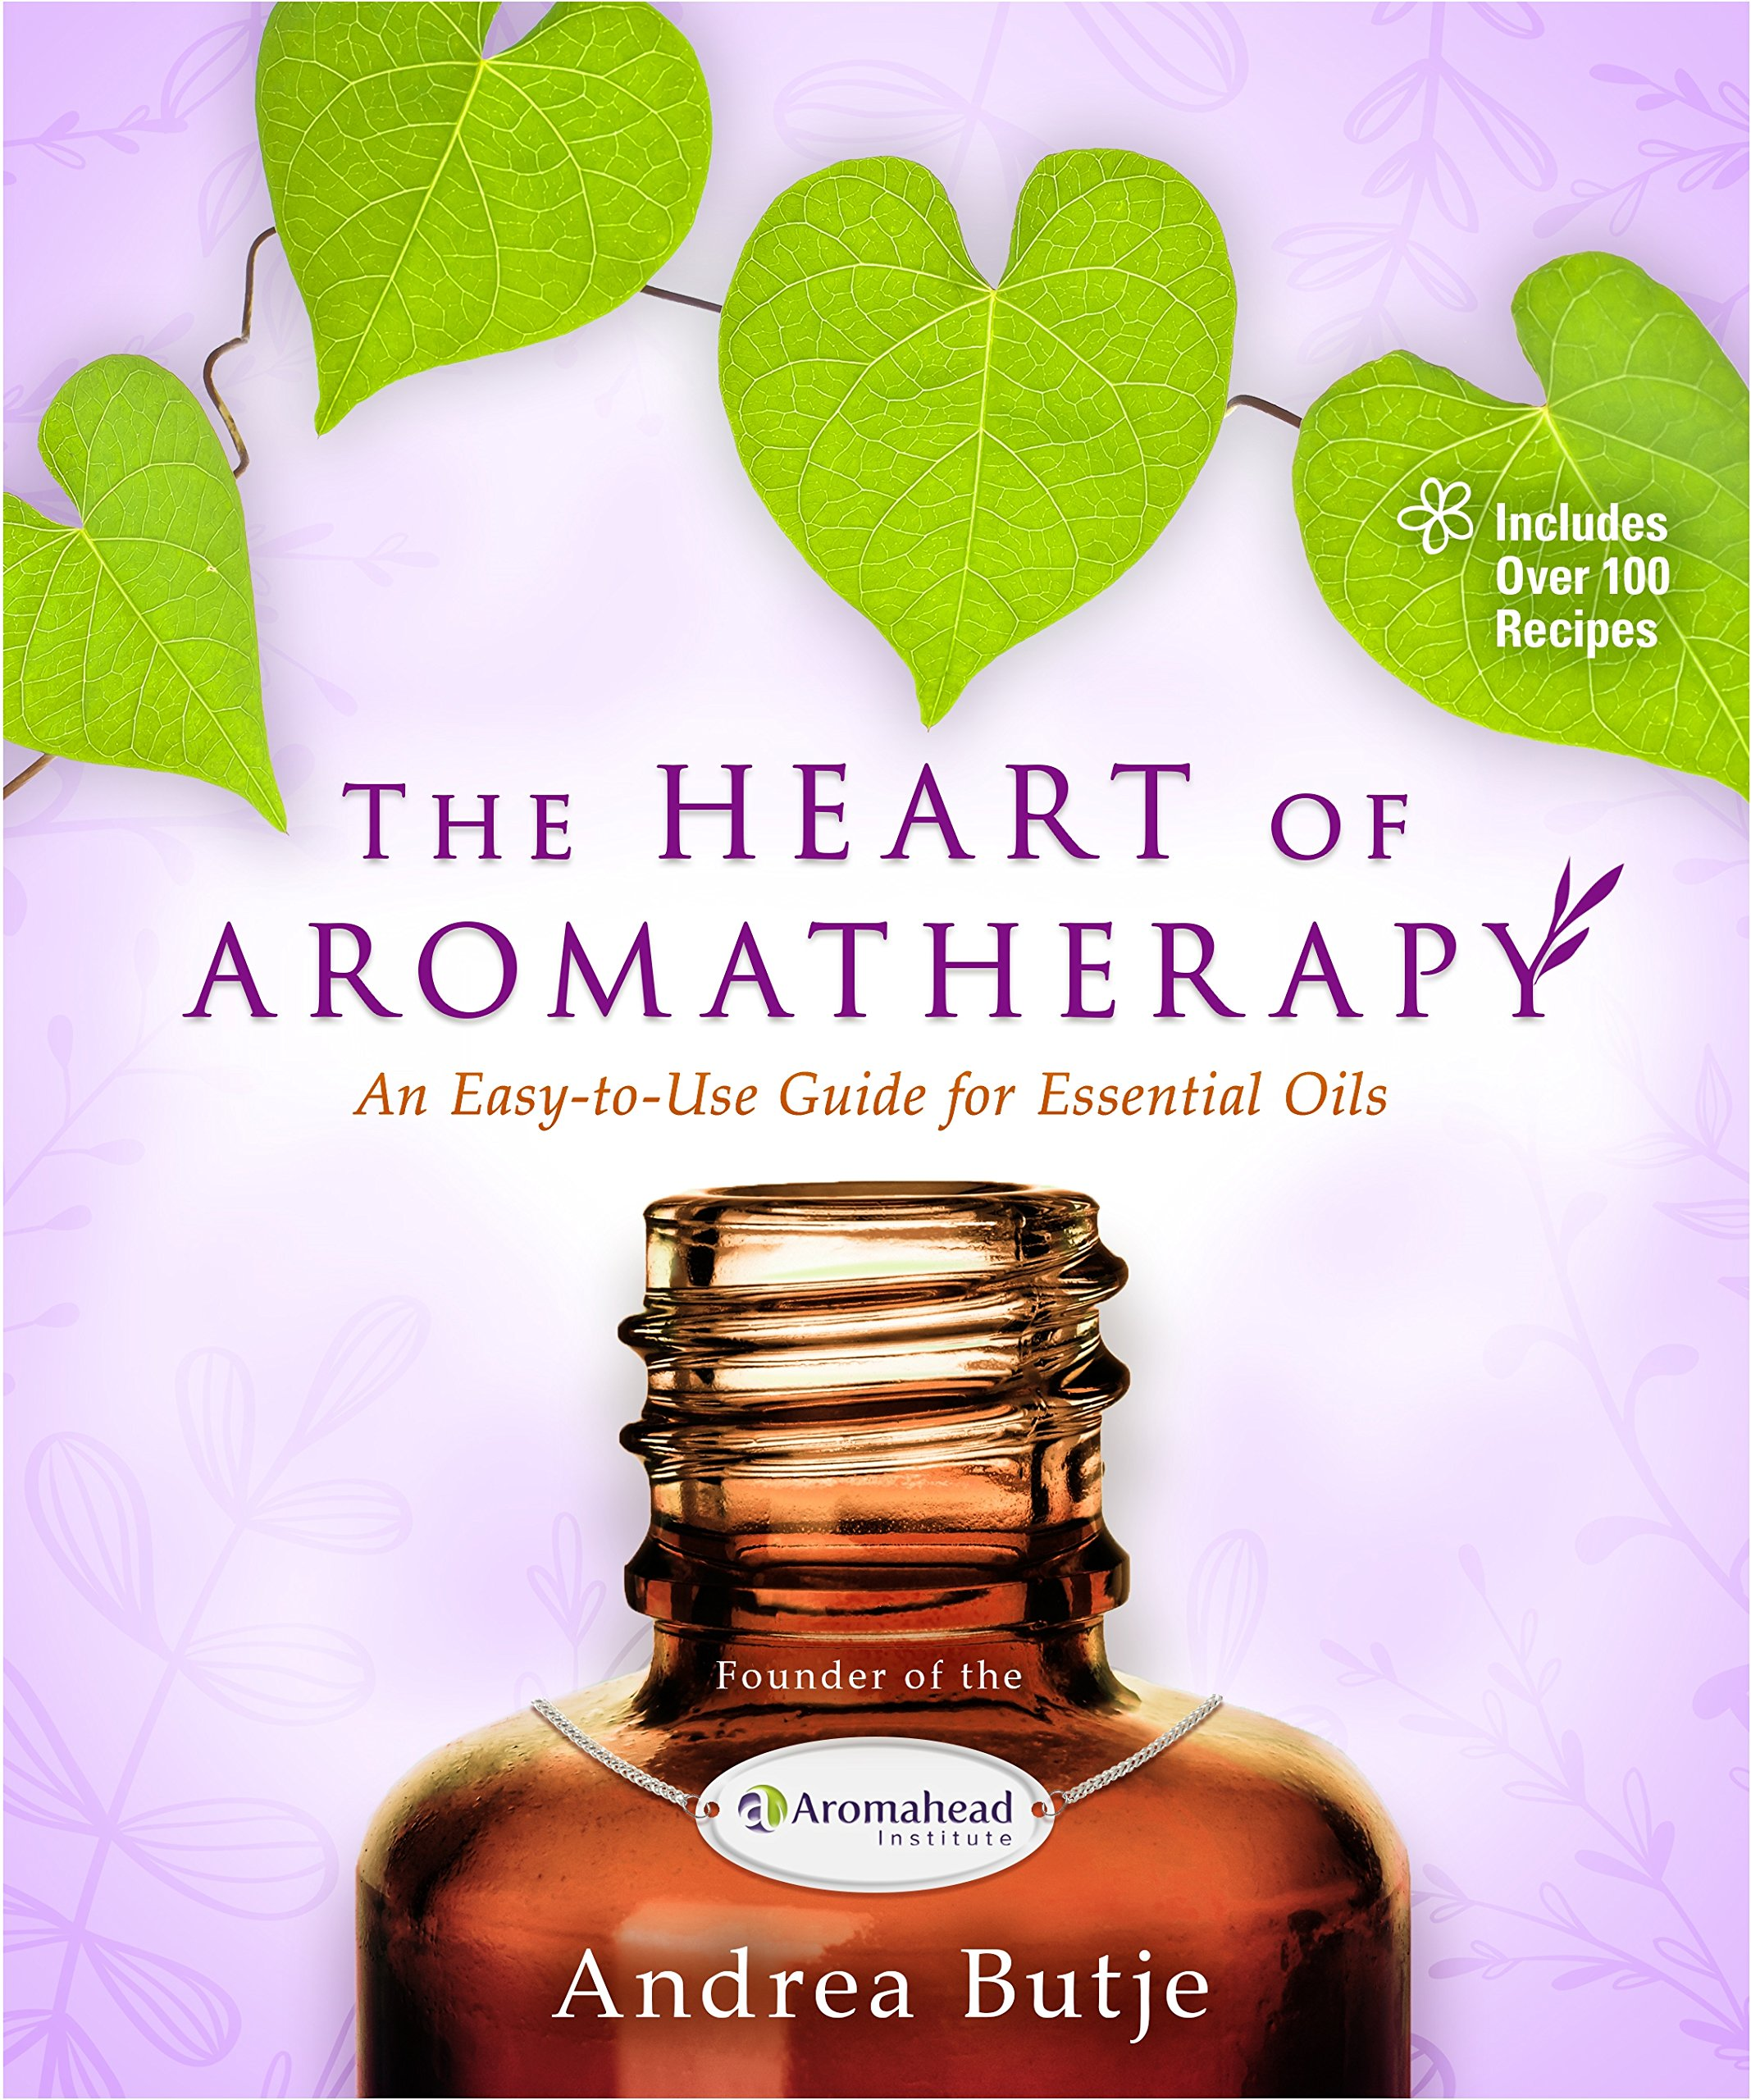 Buy Heart Of Aromatherapy Now!